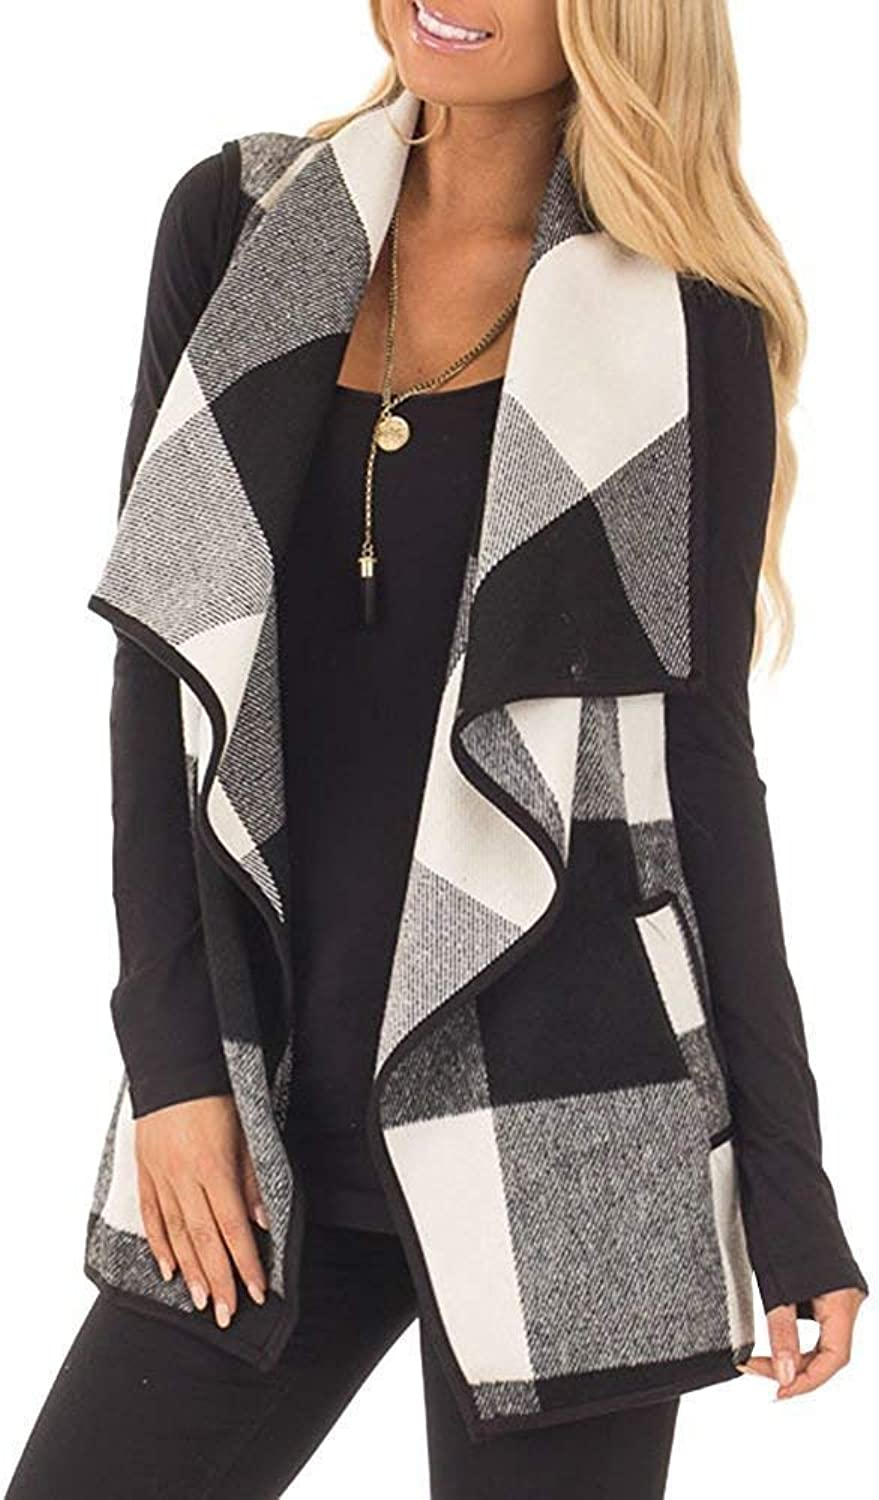 Imysty Womens Casual Open Front Sleeveless Plaid Vest Lapel Cardigan Jackets with Pockets